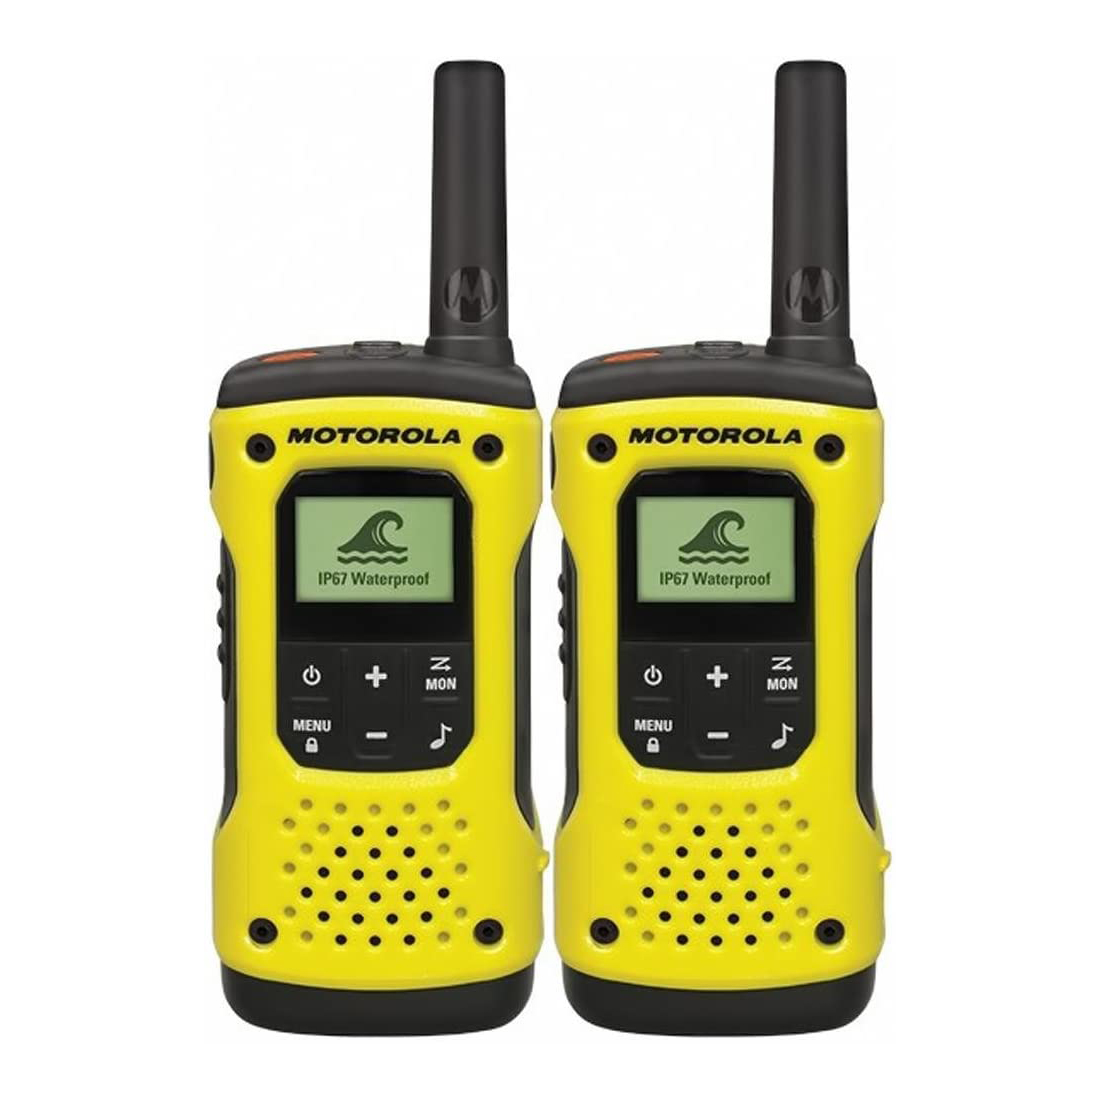 Motorola TLKR T92 H2O Walkie-Talkies – Yellow 2-Way Radios Motorola